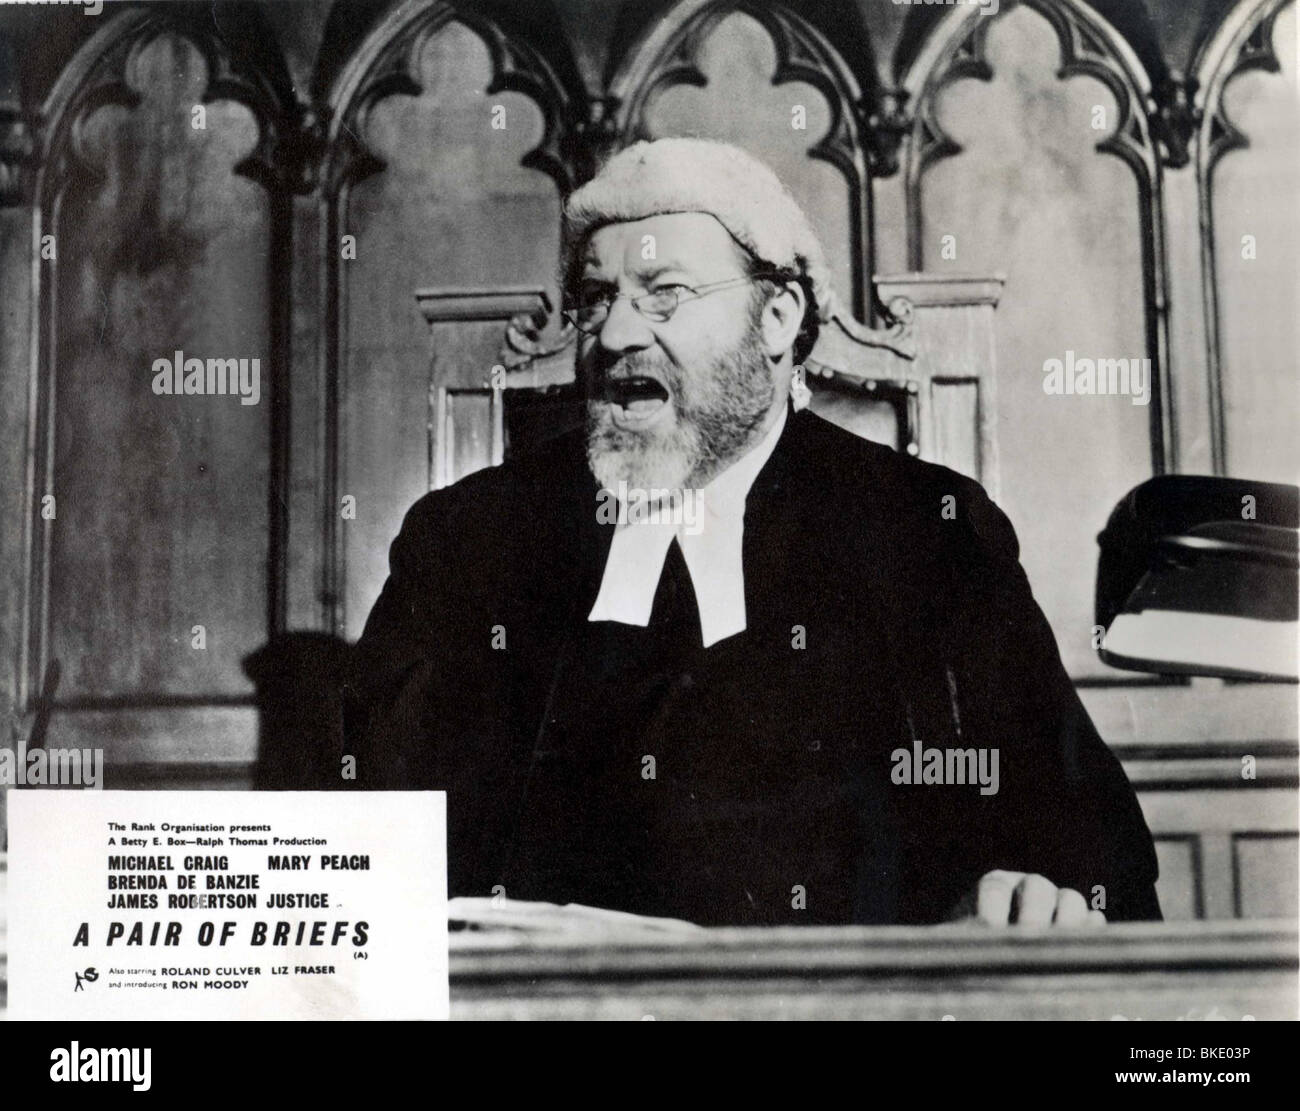 A PAIR OF BRIEFS (1961) JAMES ROBERTSON JUSTICE PRBR 003P - Stock Image